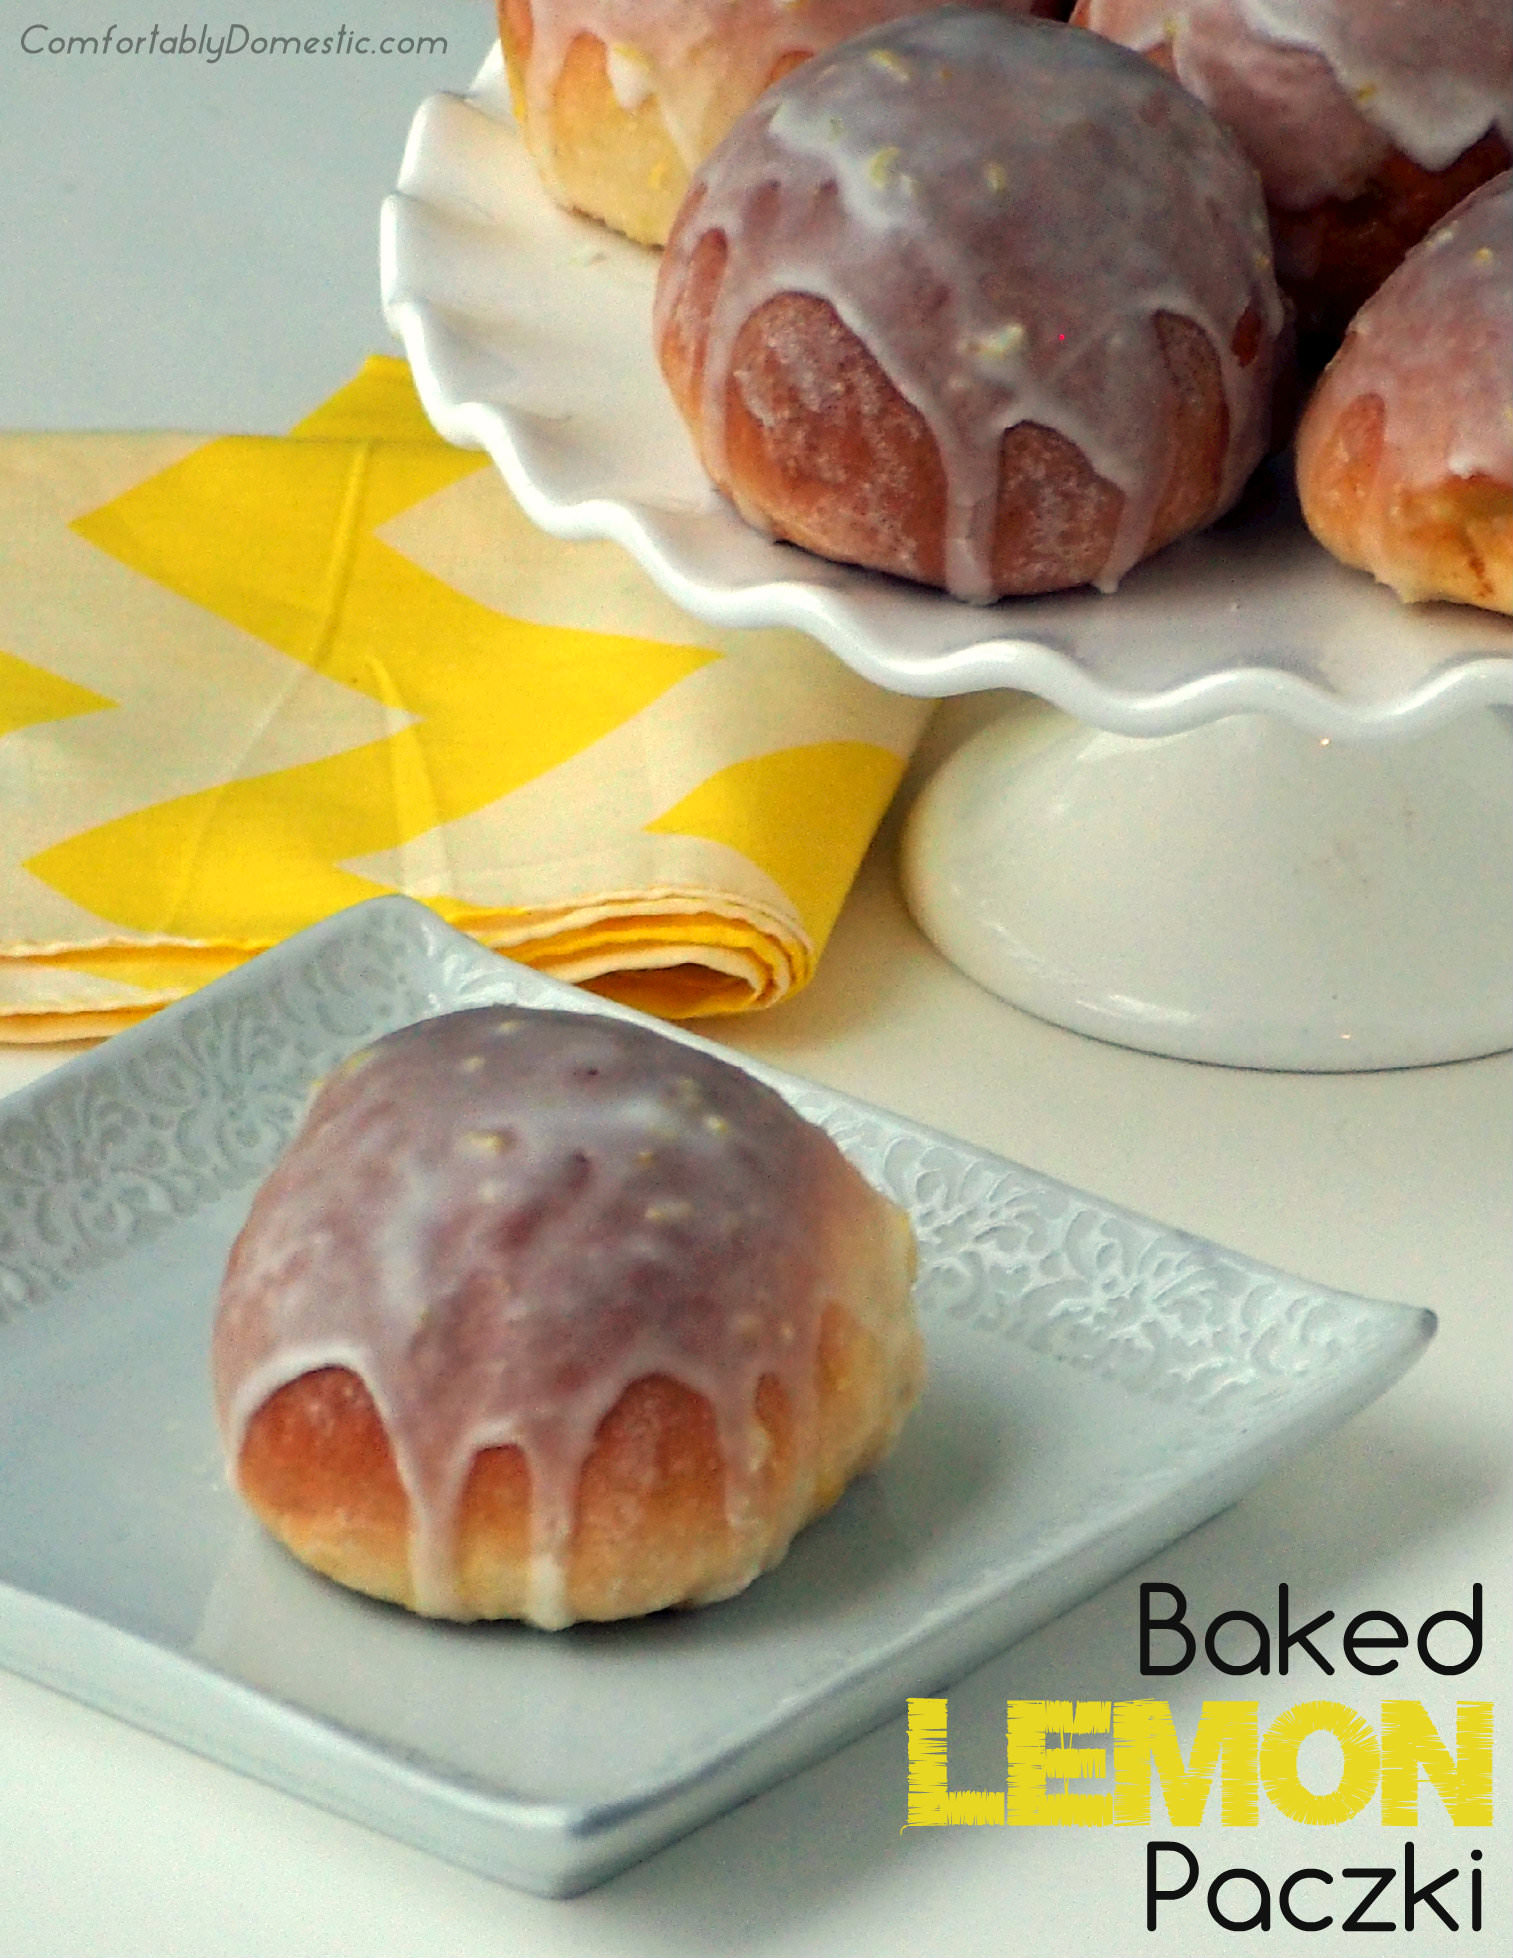 Baked Lemon Custard Doughnuts {Lemon Paczki} are a lighter version of traditional paczki. | ComfortablyDomestic.com